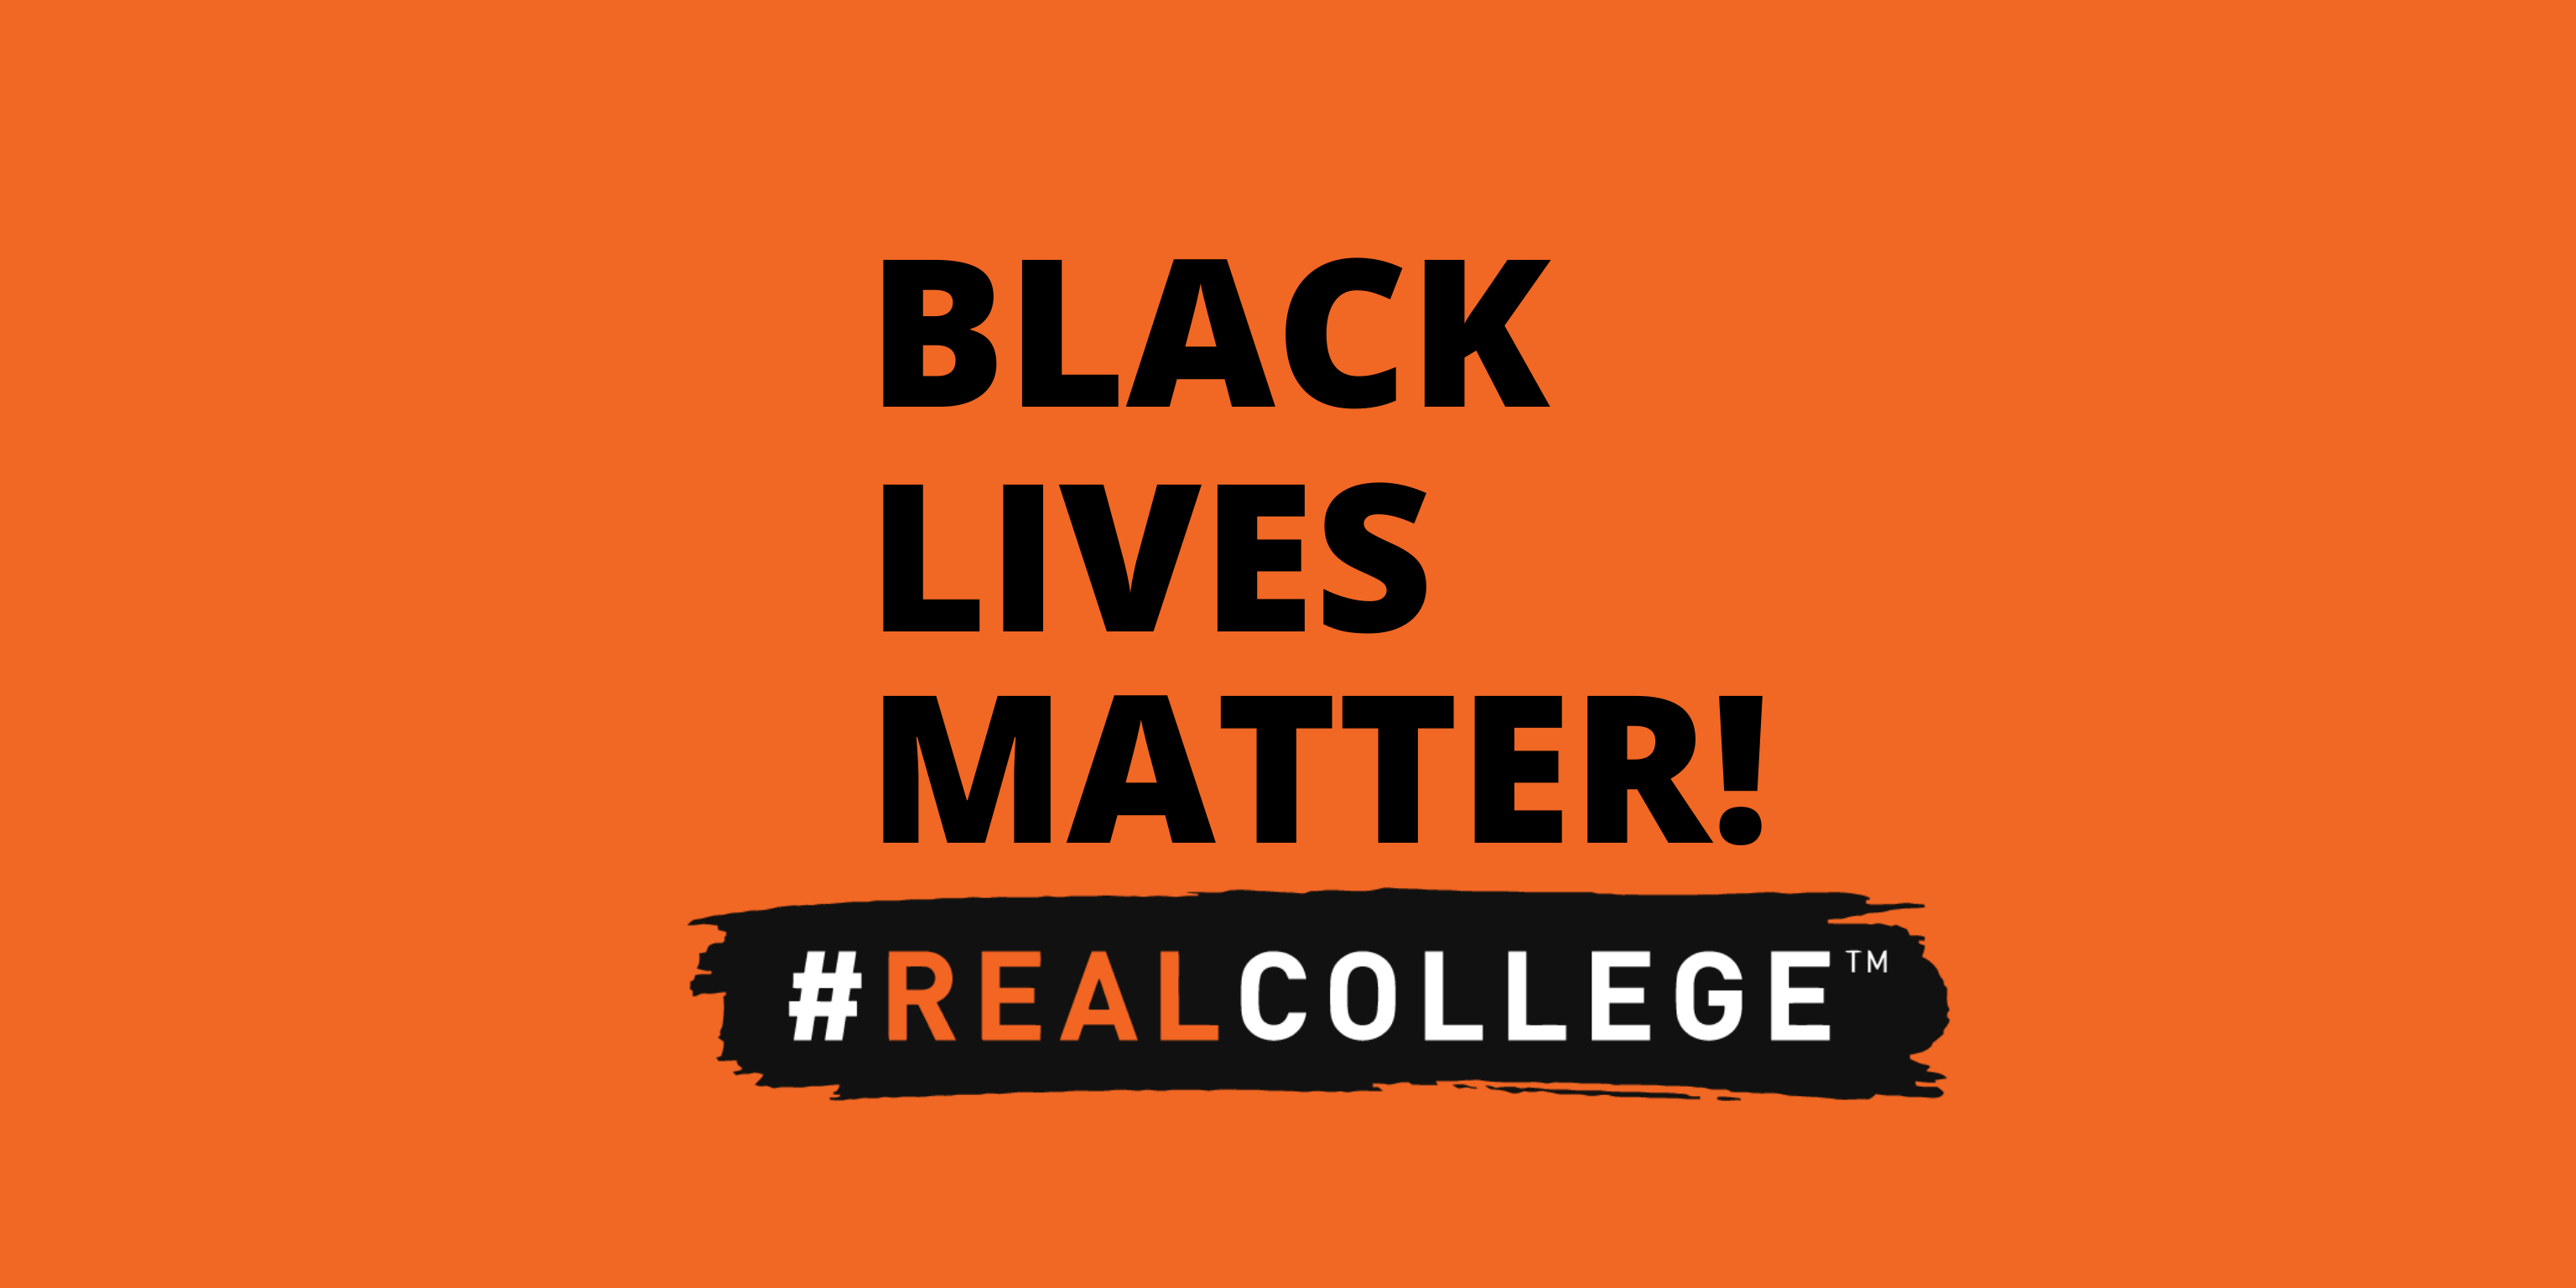 #RealCollege Statement on Police Killings